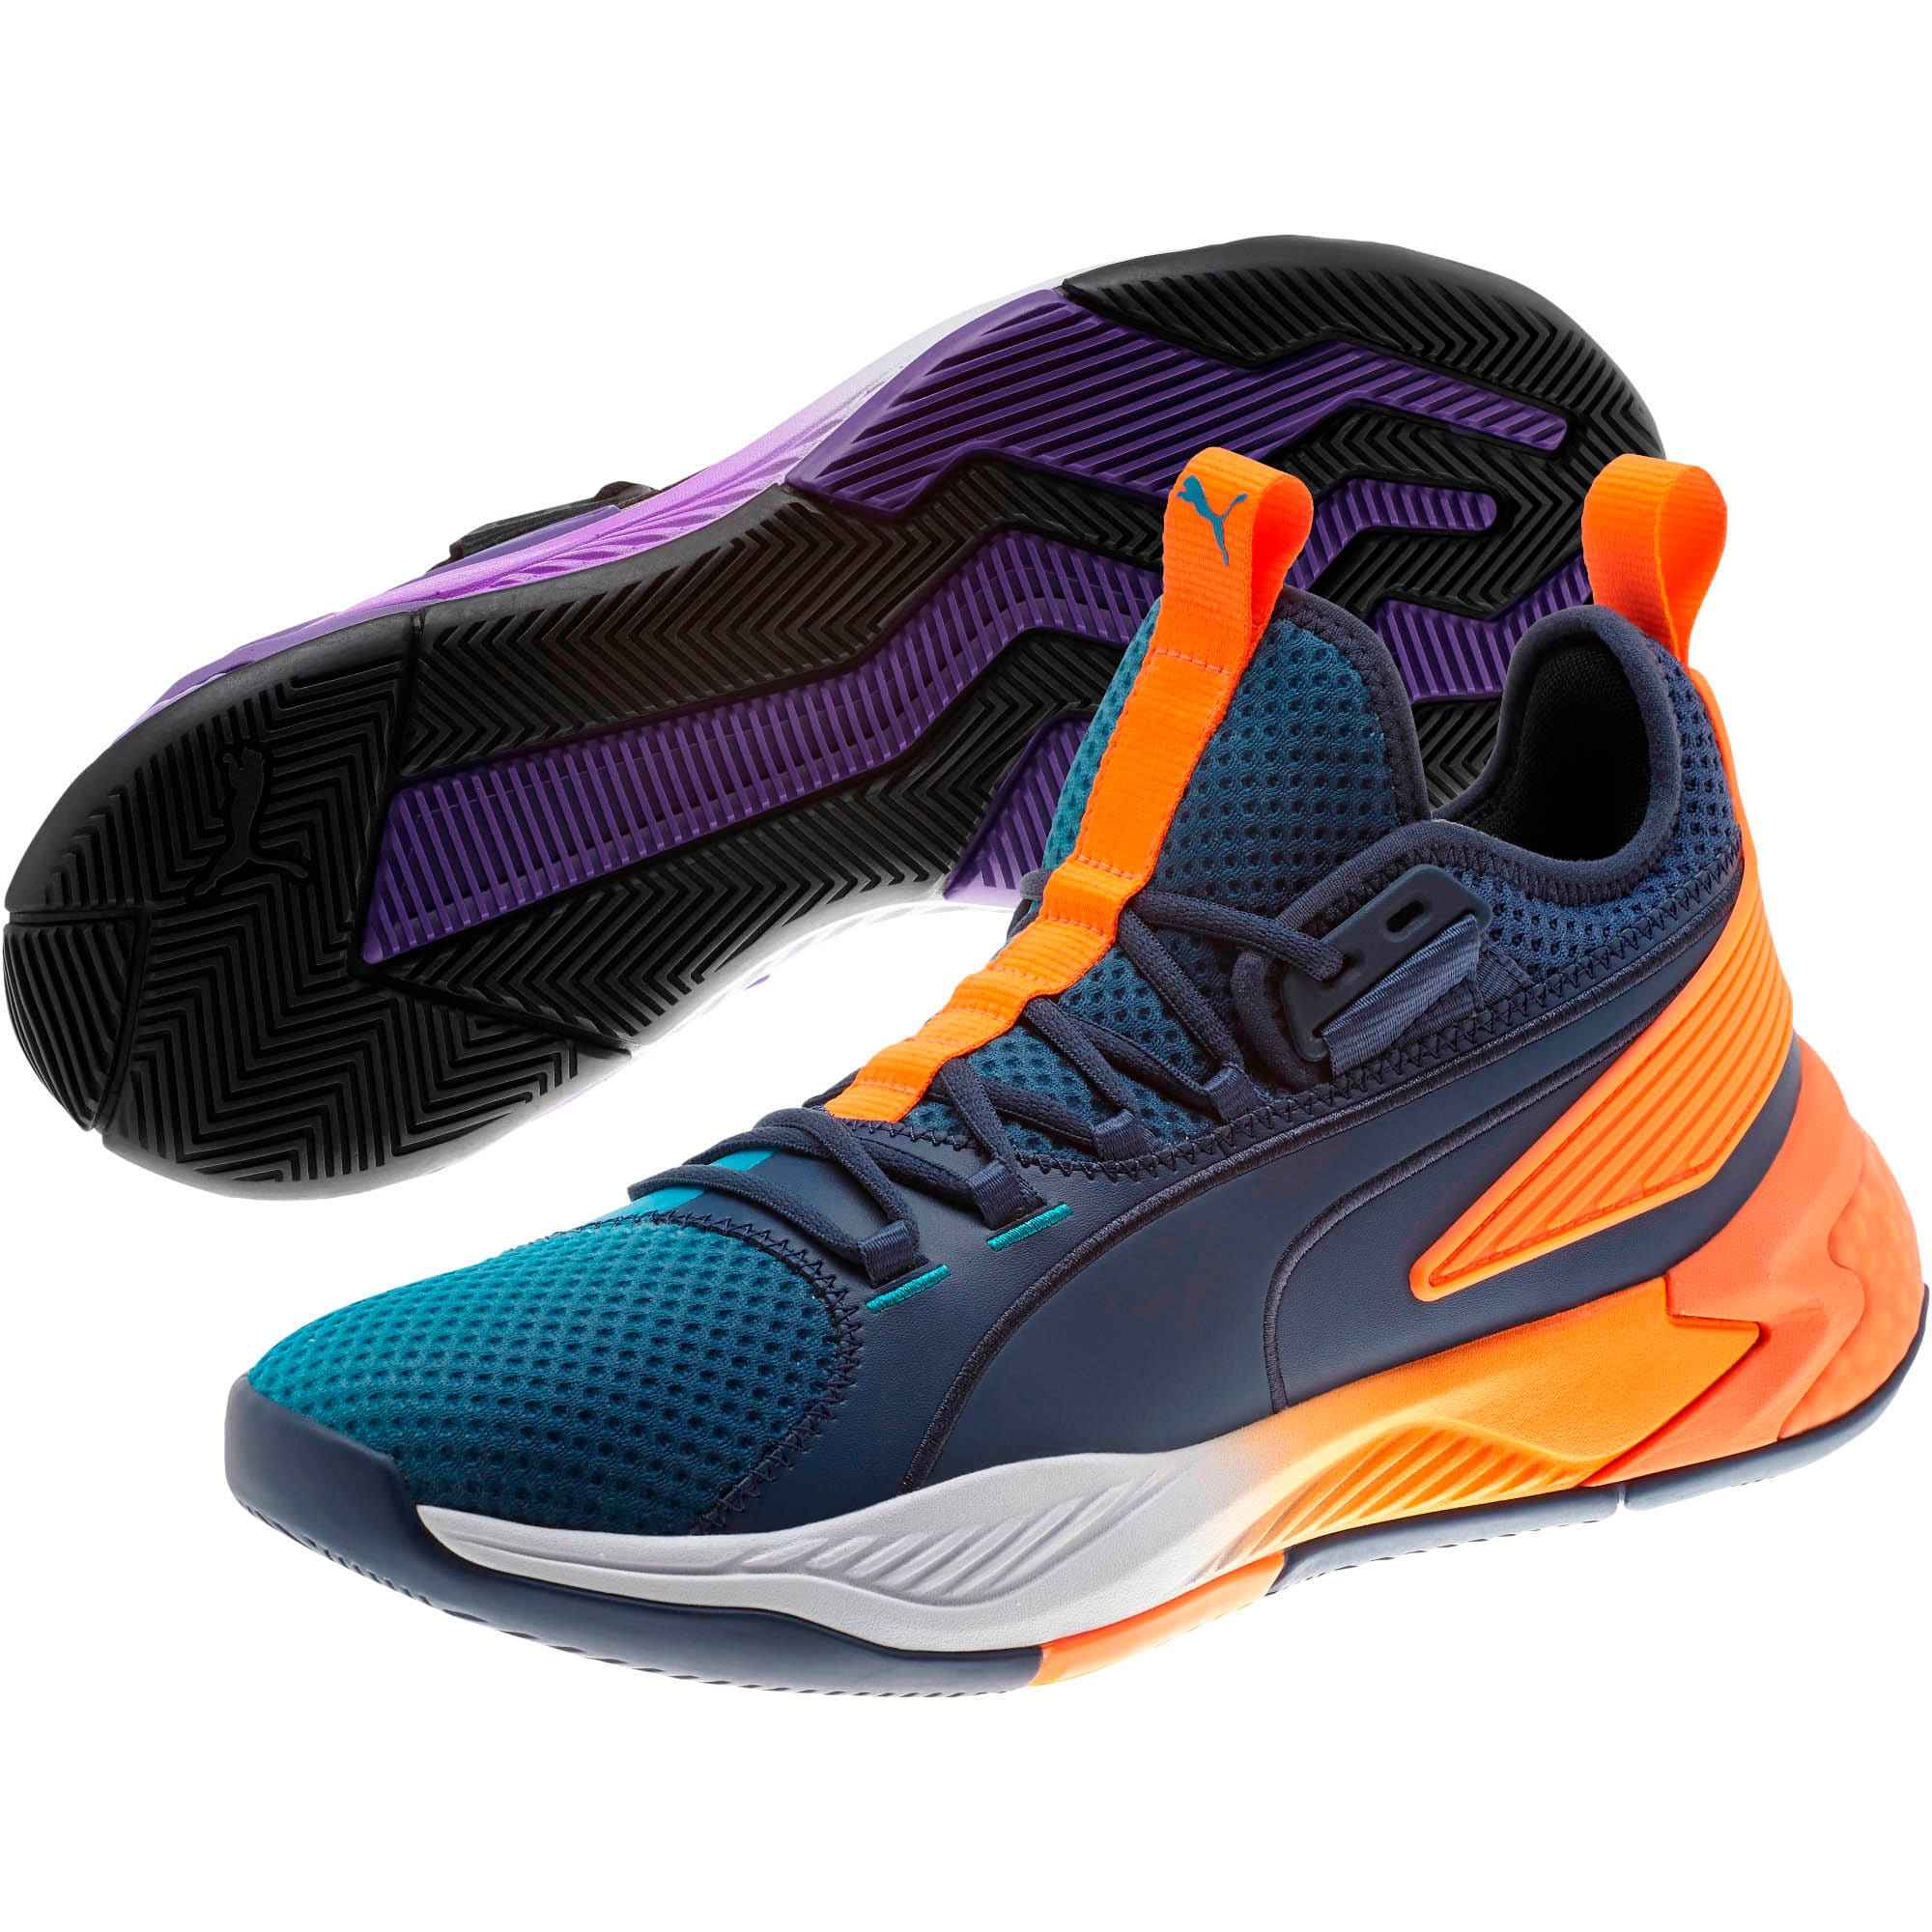 Thumbnail 2 of Uproar Charlotte ASG Fade Basketball Shoes, Orange- PURPLE, medium